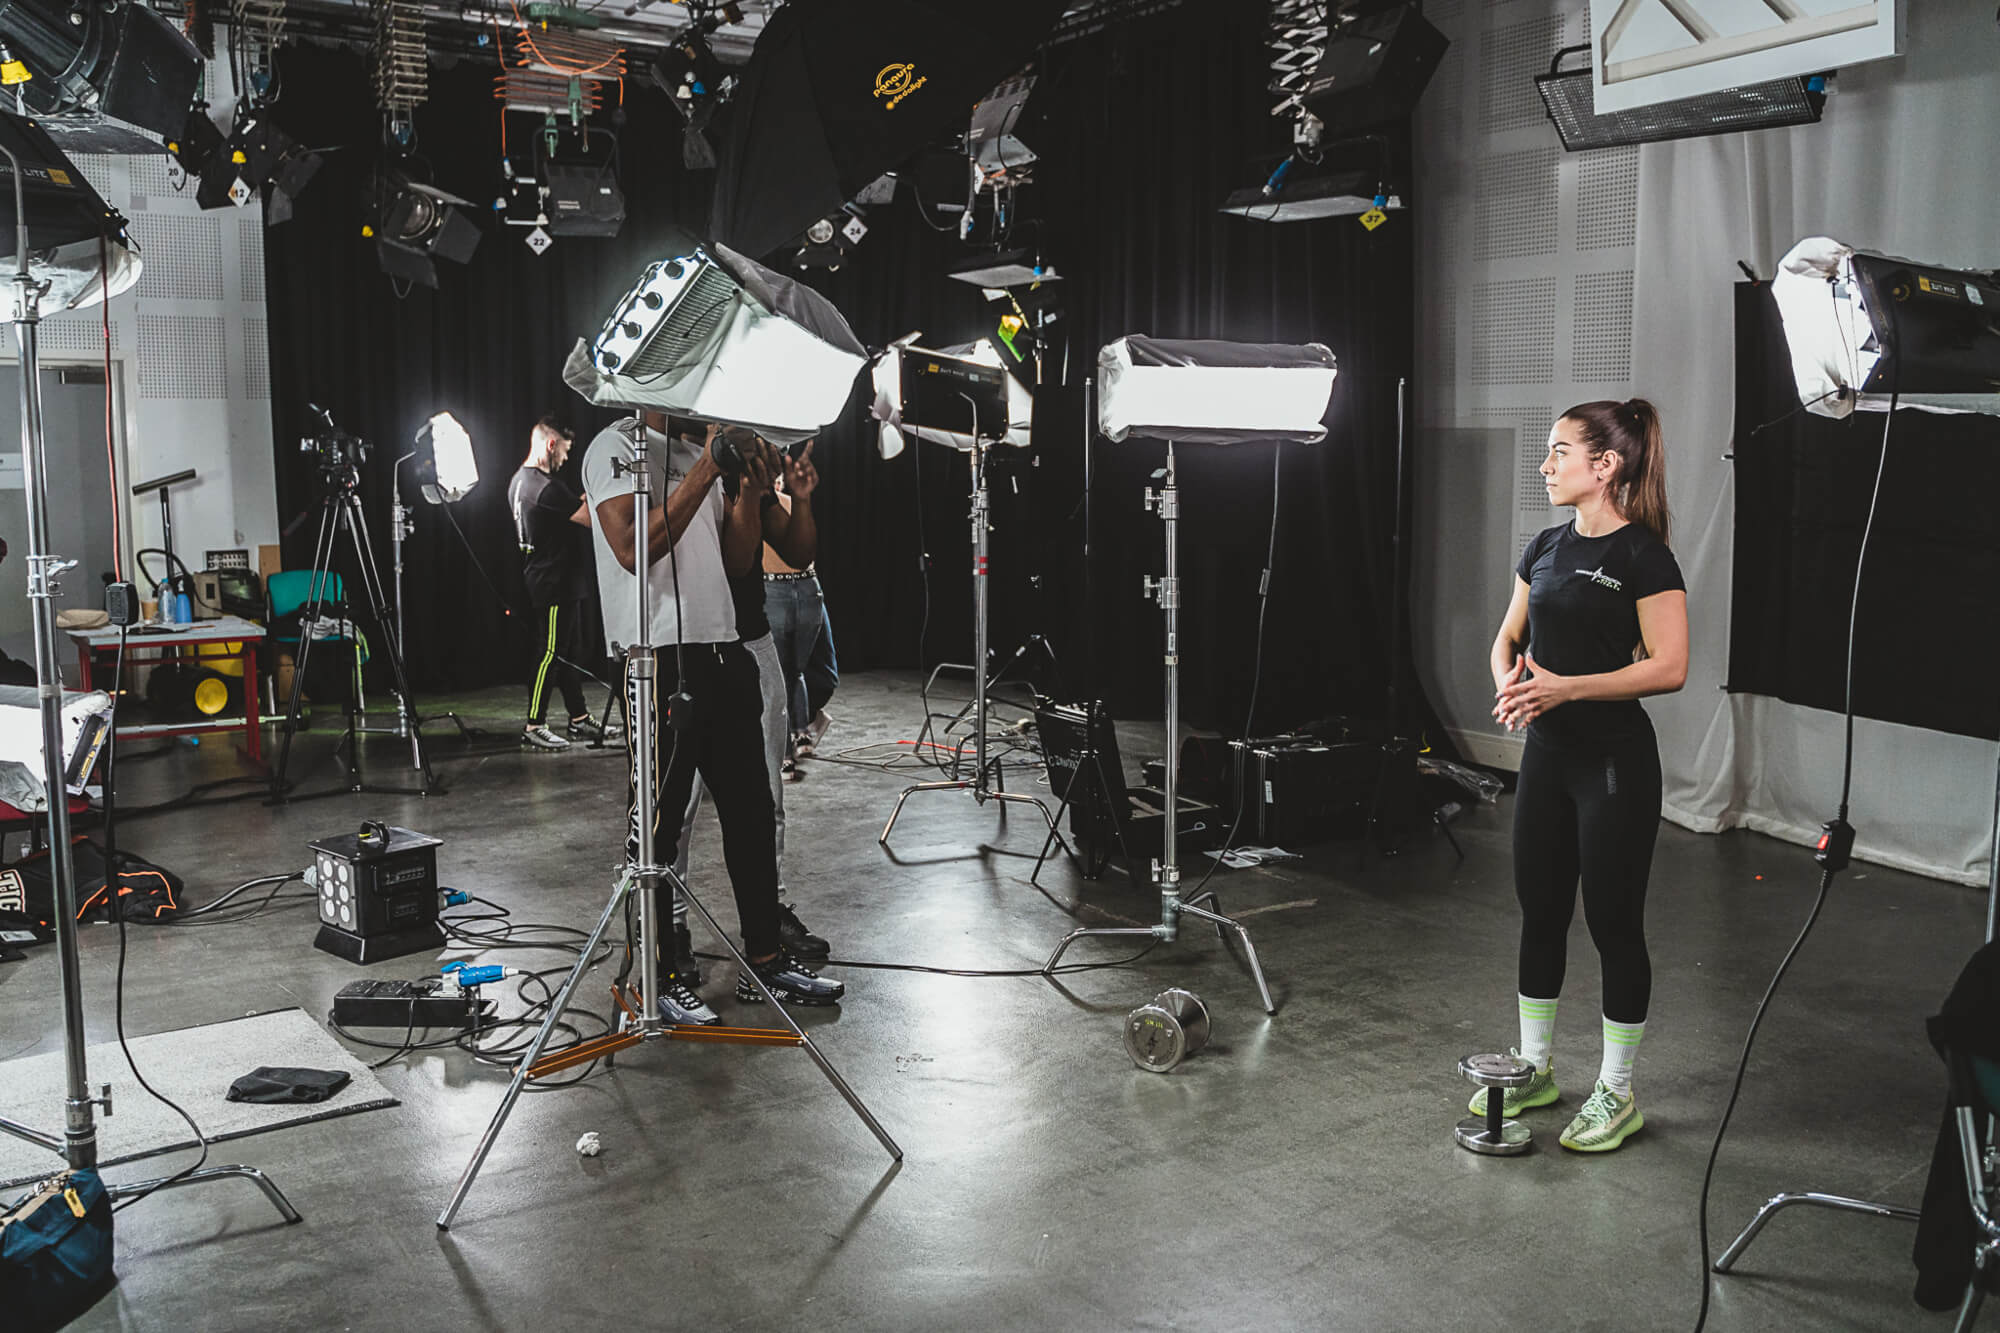 A female in gym wear is photographed in a studio full of camera and lighting equipment